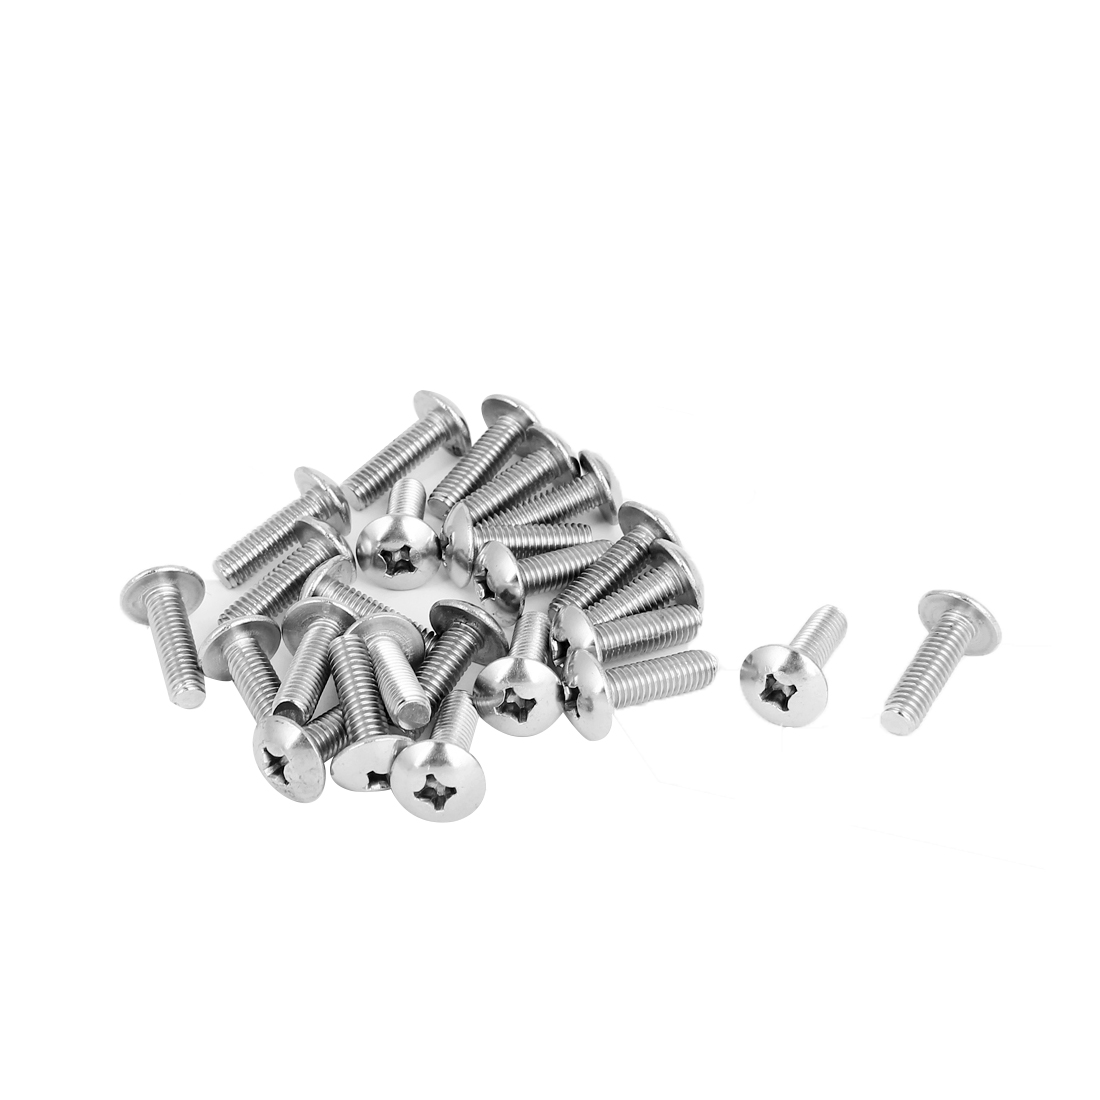 M6x20mm Stainless Steel Truss Phillips Head Machine Screws 25pcs